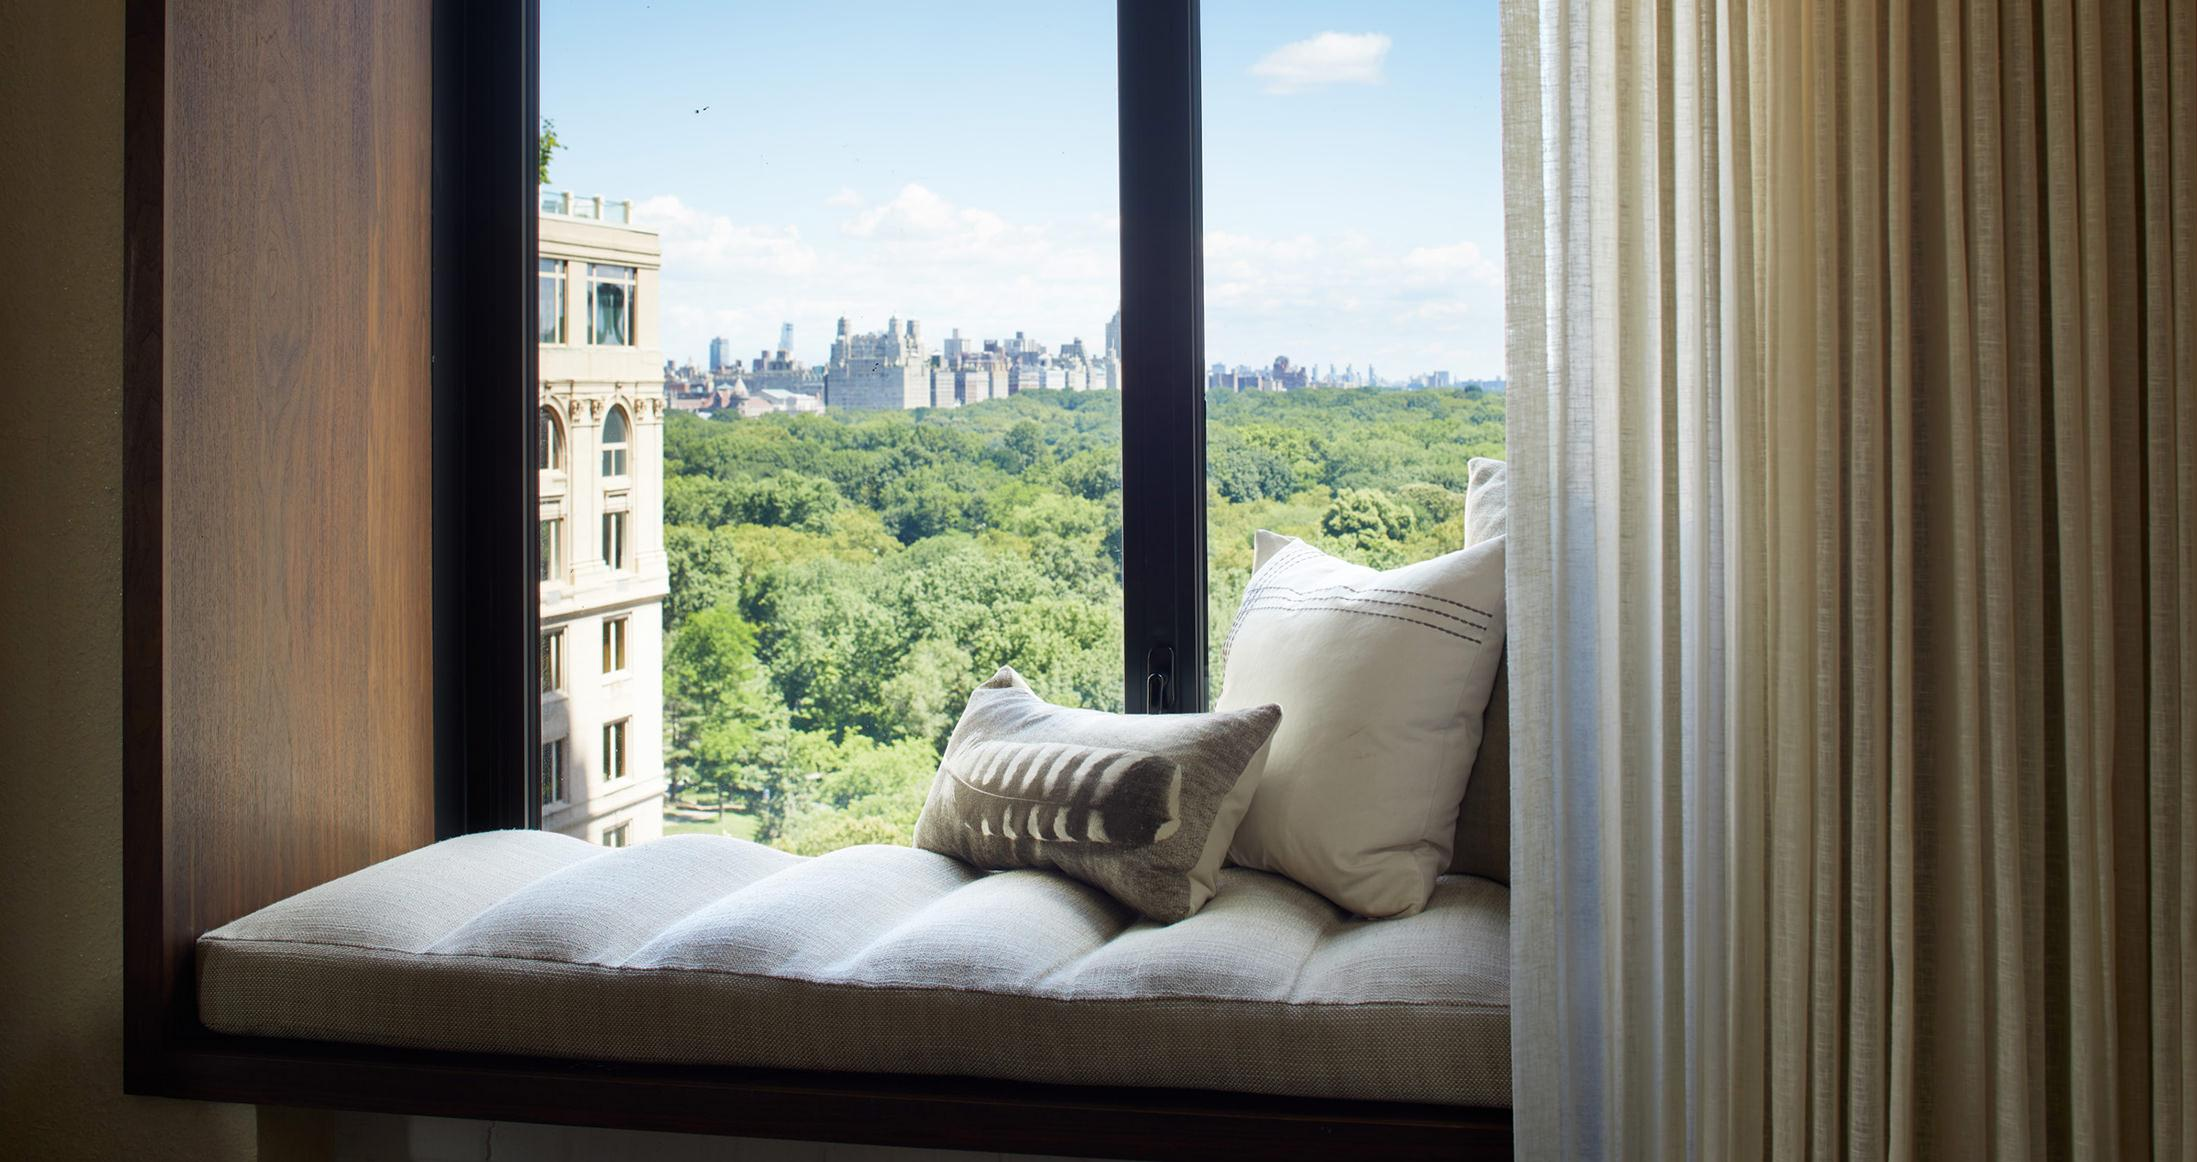 View of central park from room nook